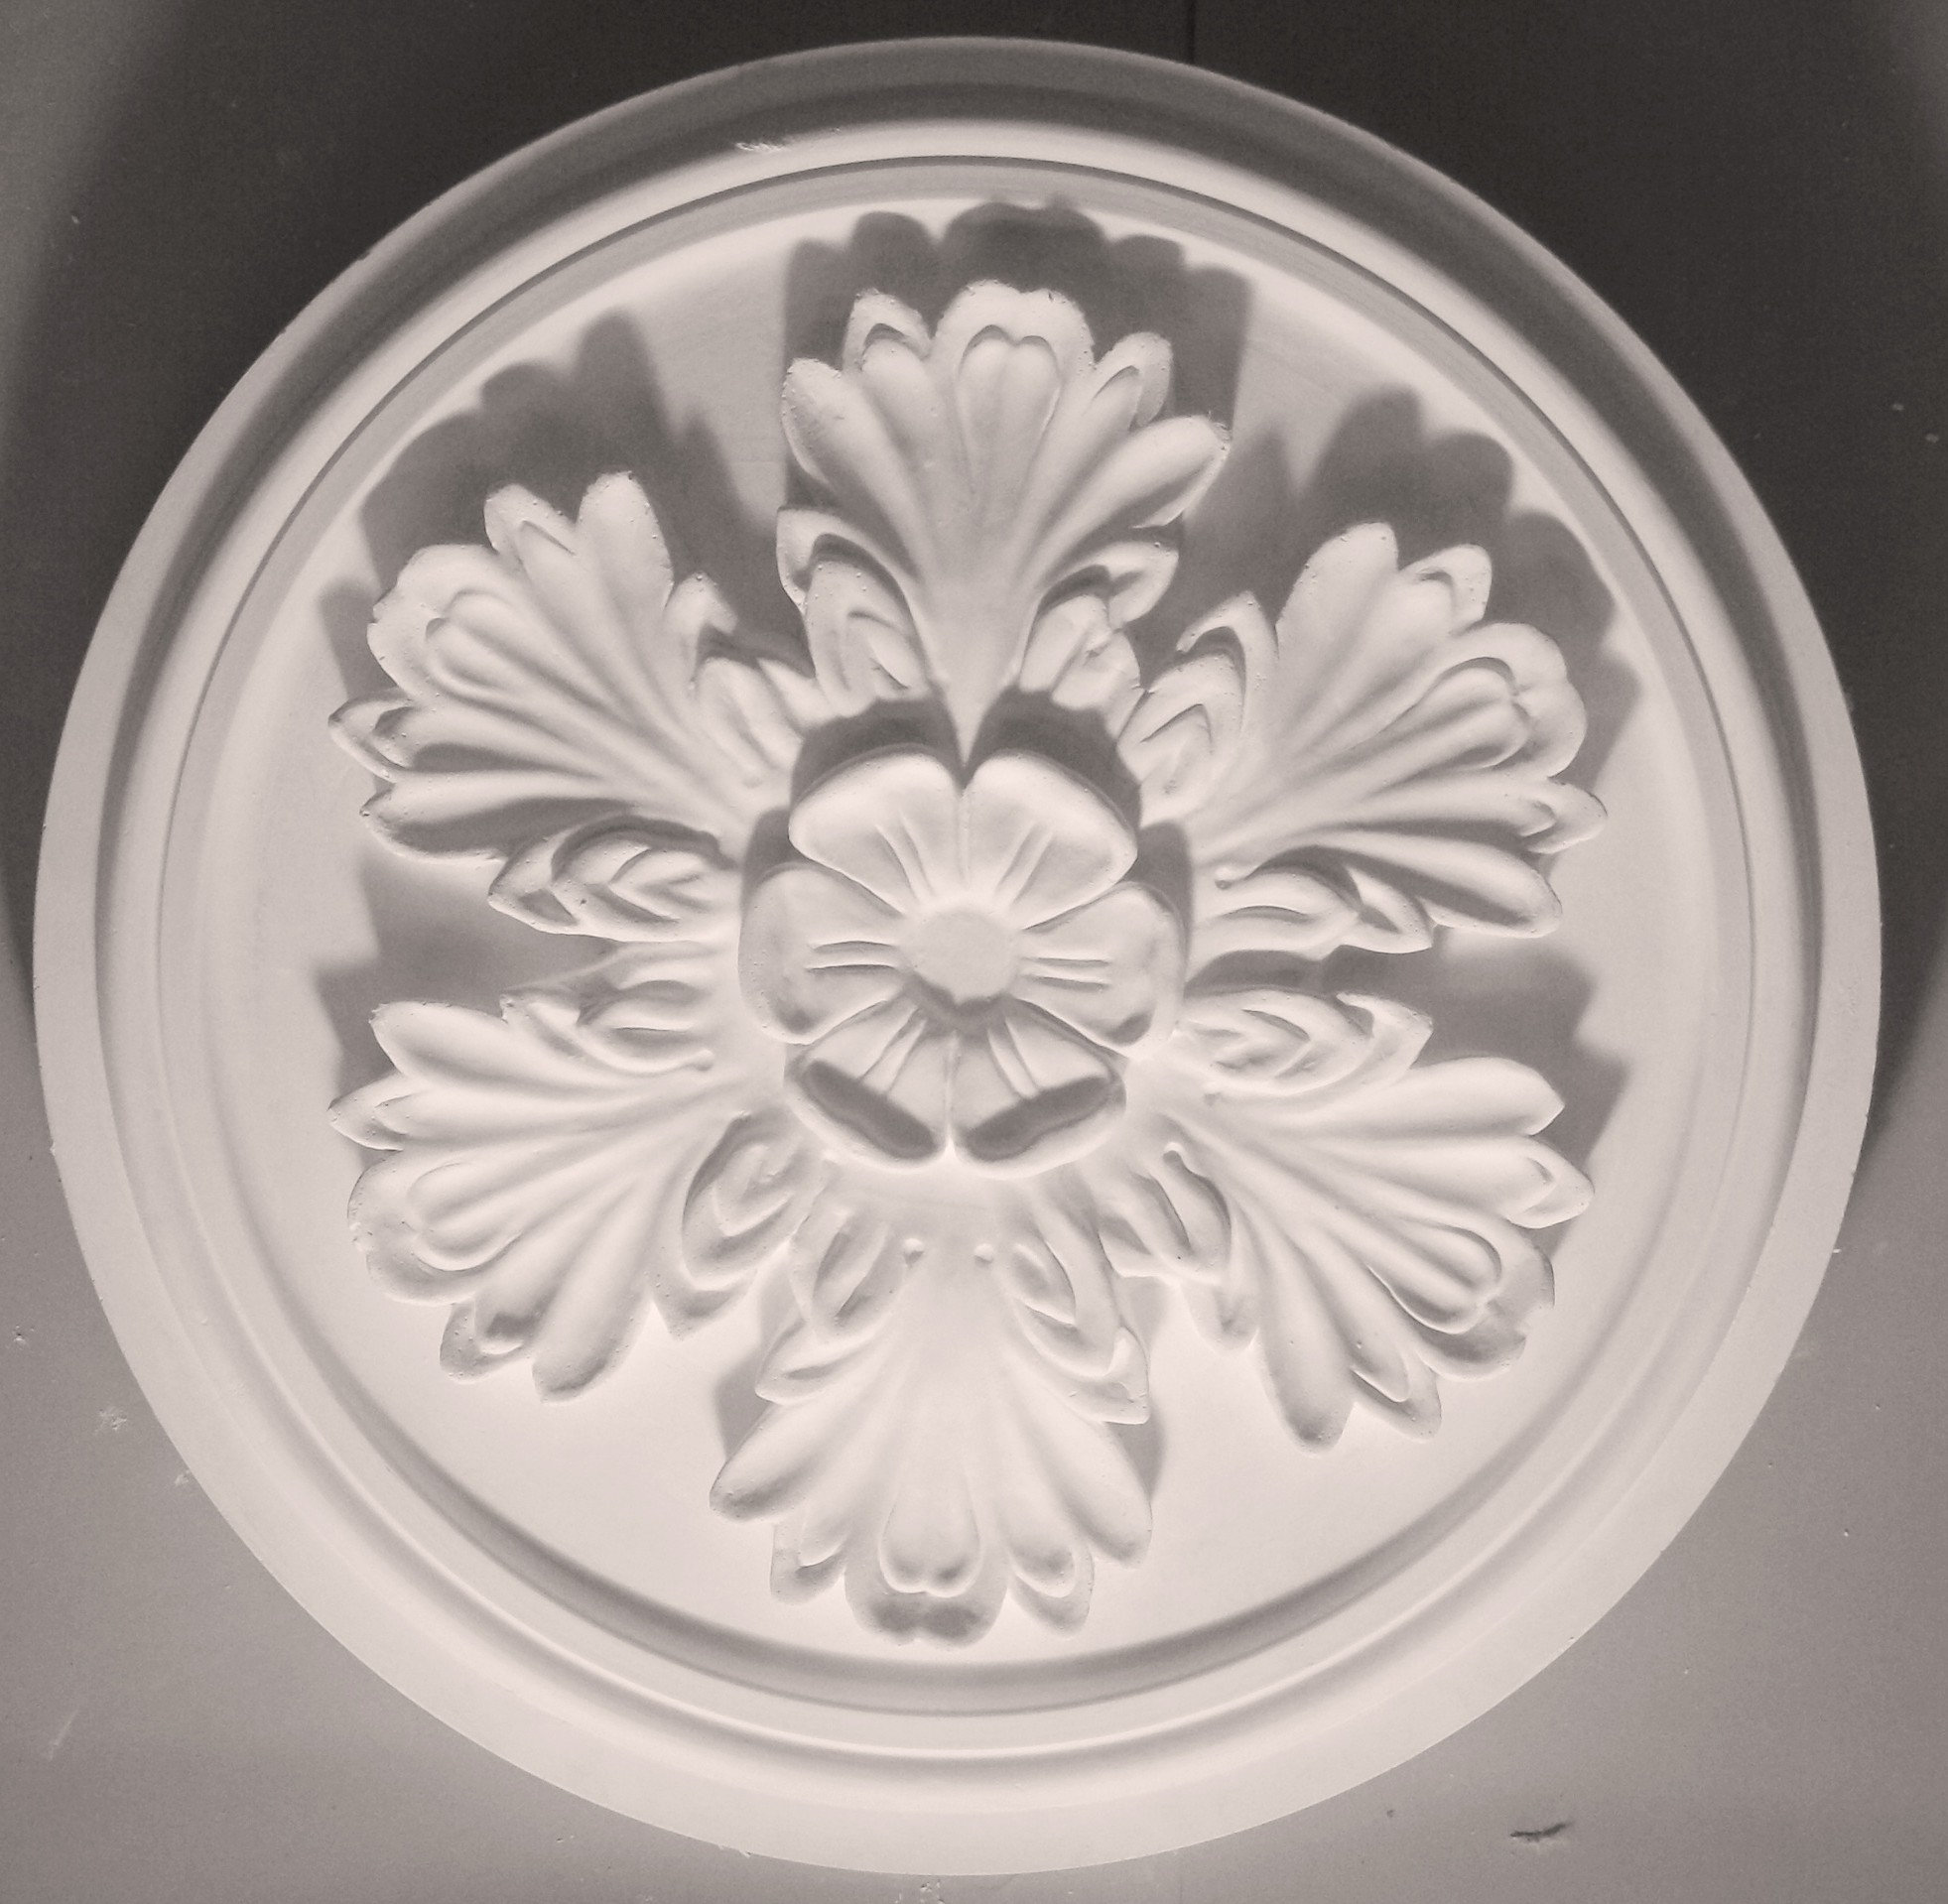 Ceiling Roses Ceiling Rose Designs To Fit Any Style